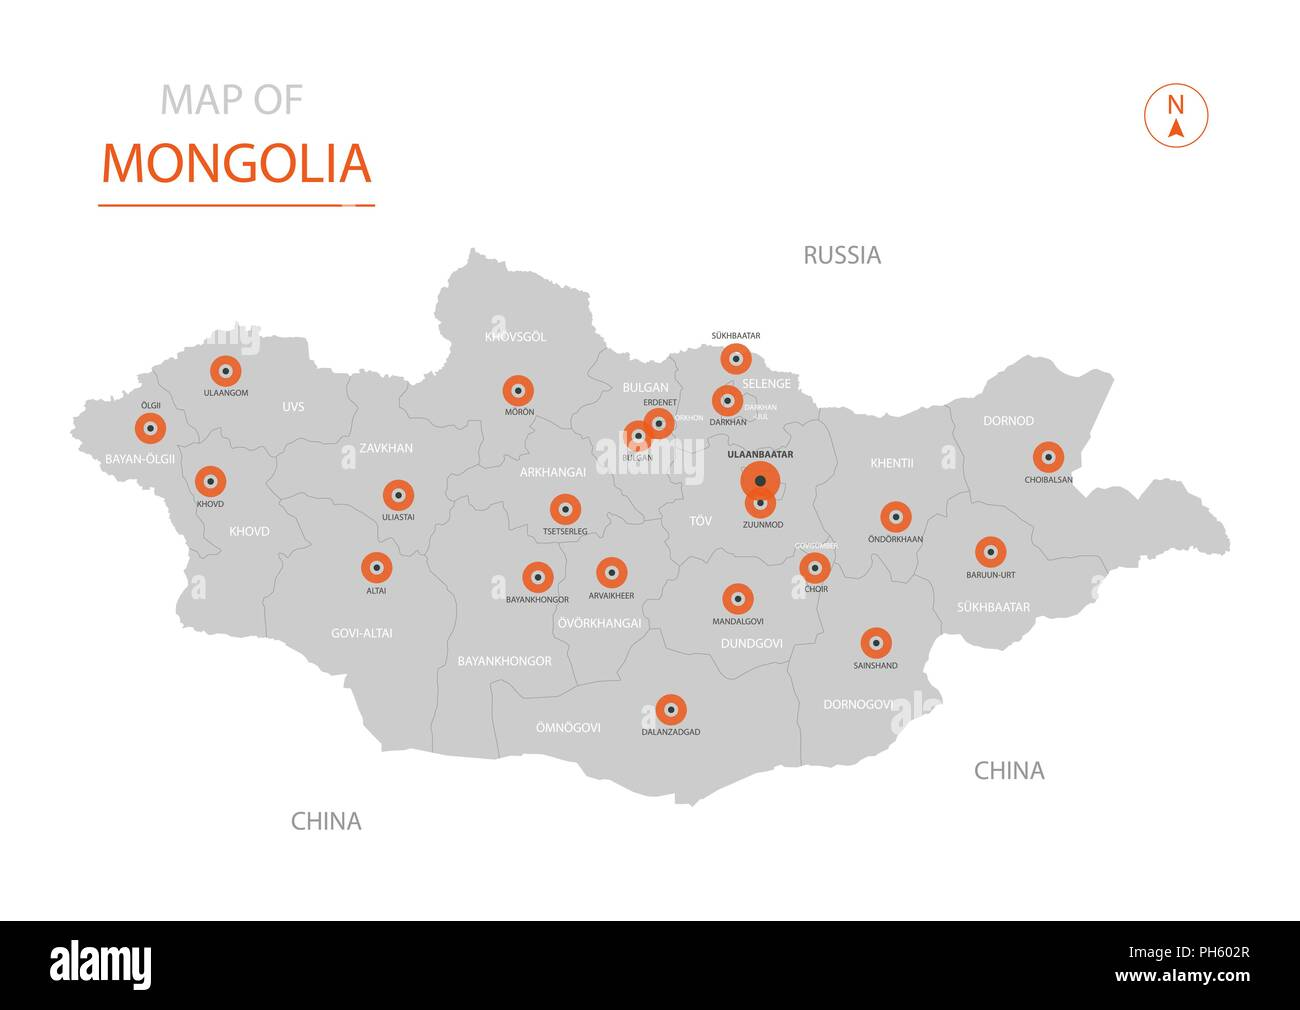 Stylized vector Mongolia map showing big cities, capital Ulaanbaatar, administrative divisions. - Stock Image